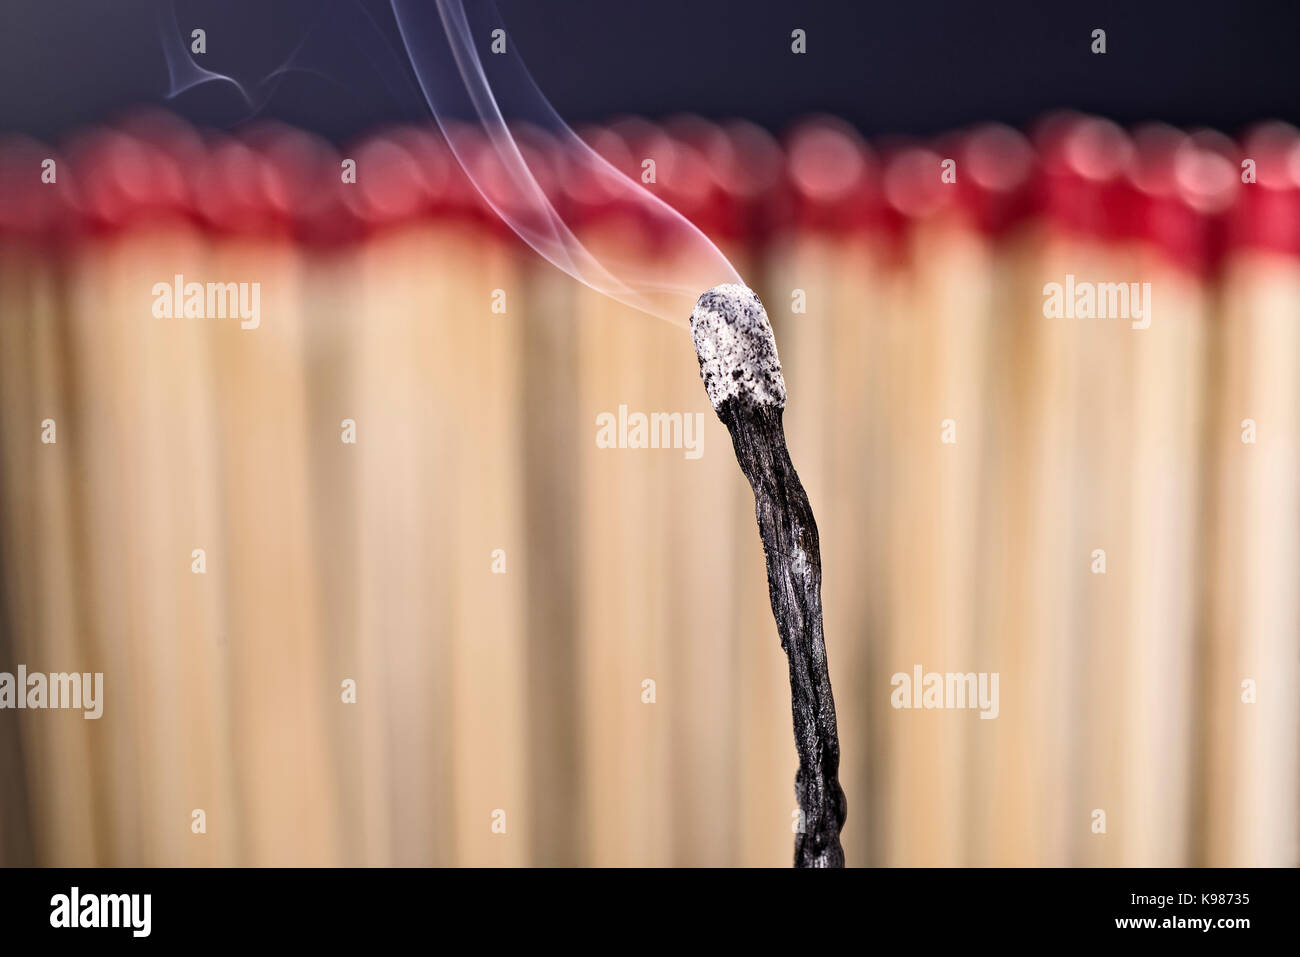 Burned matchstick in front of a new set of matches - Stock Image